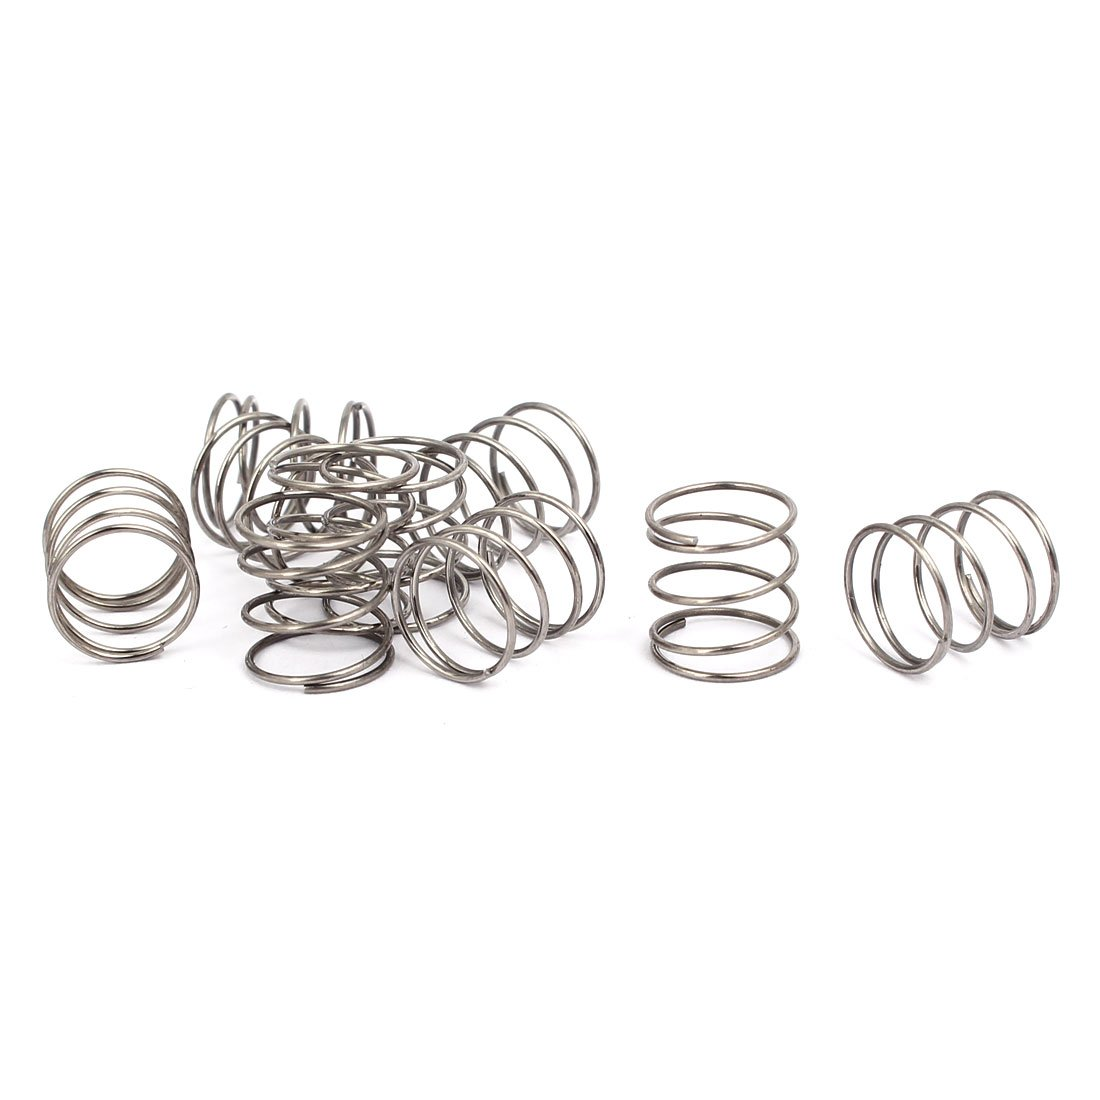 uxcell Compression Spring 304 Outlet SALE Stainless Wire 10mm 0.6mm Steel OD Super special price